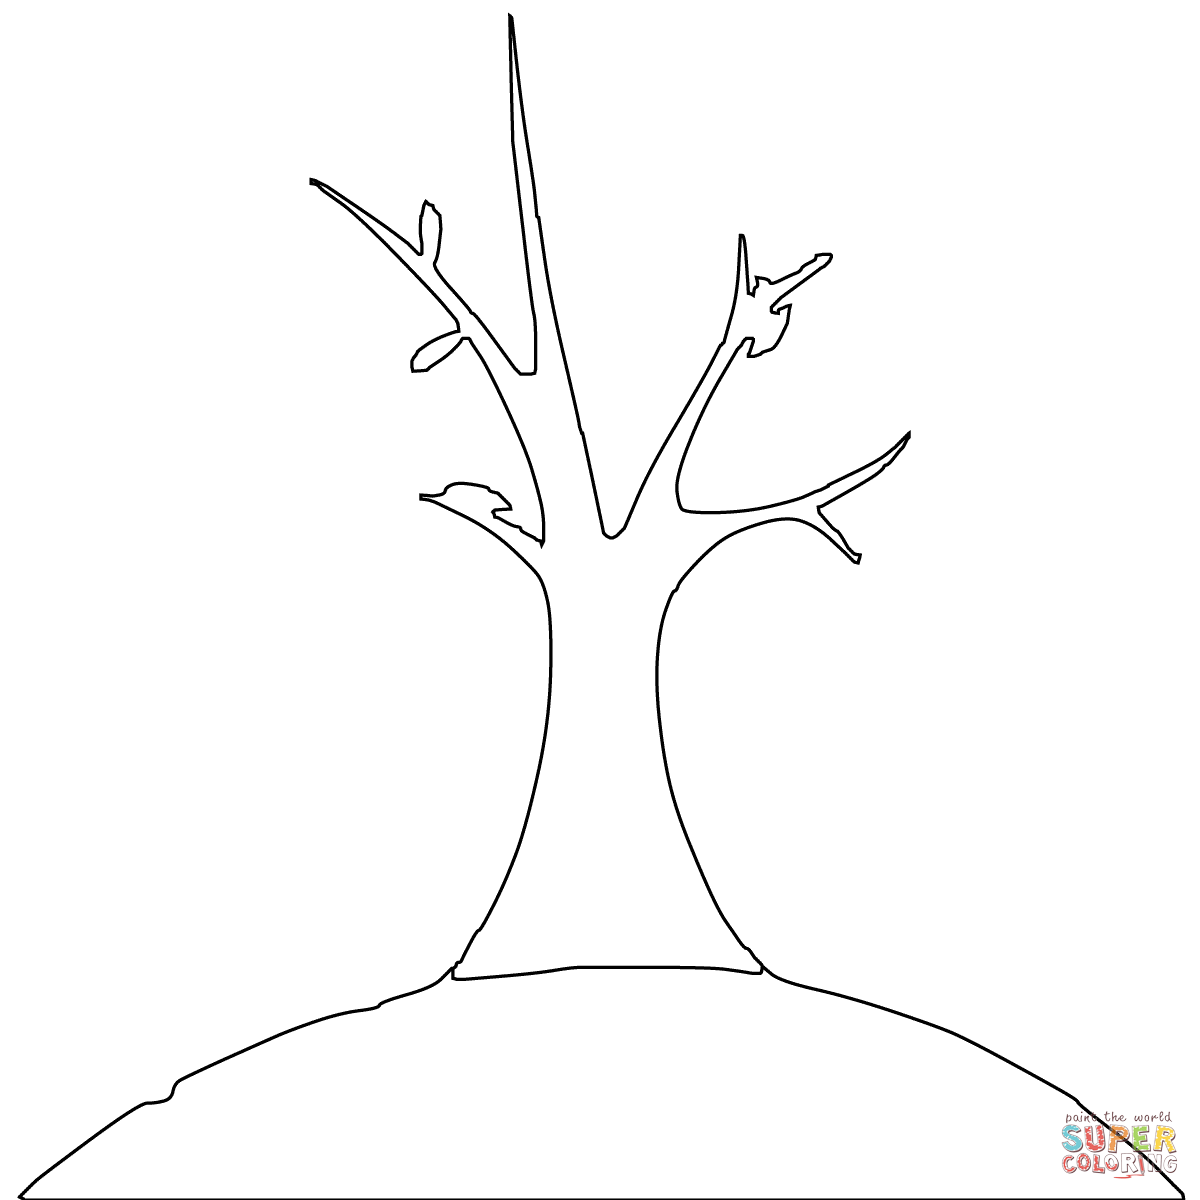 Simple Bare Tree Silhouette Sketch